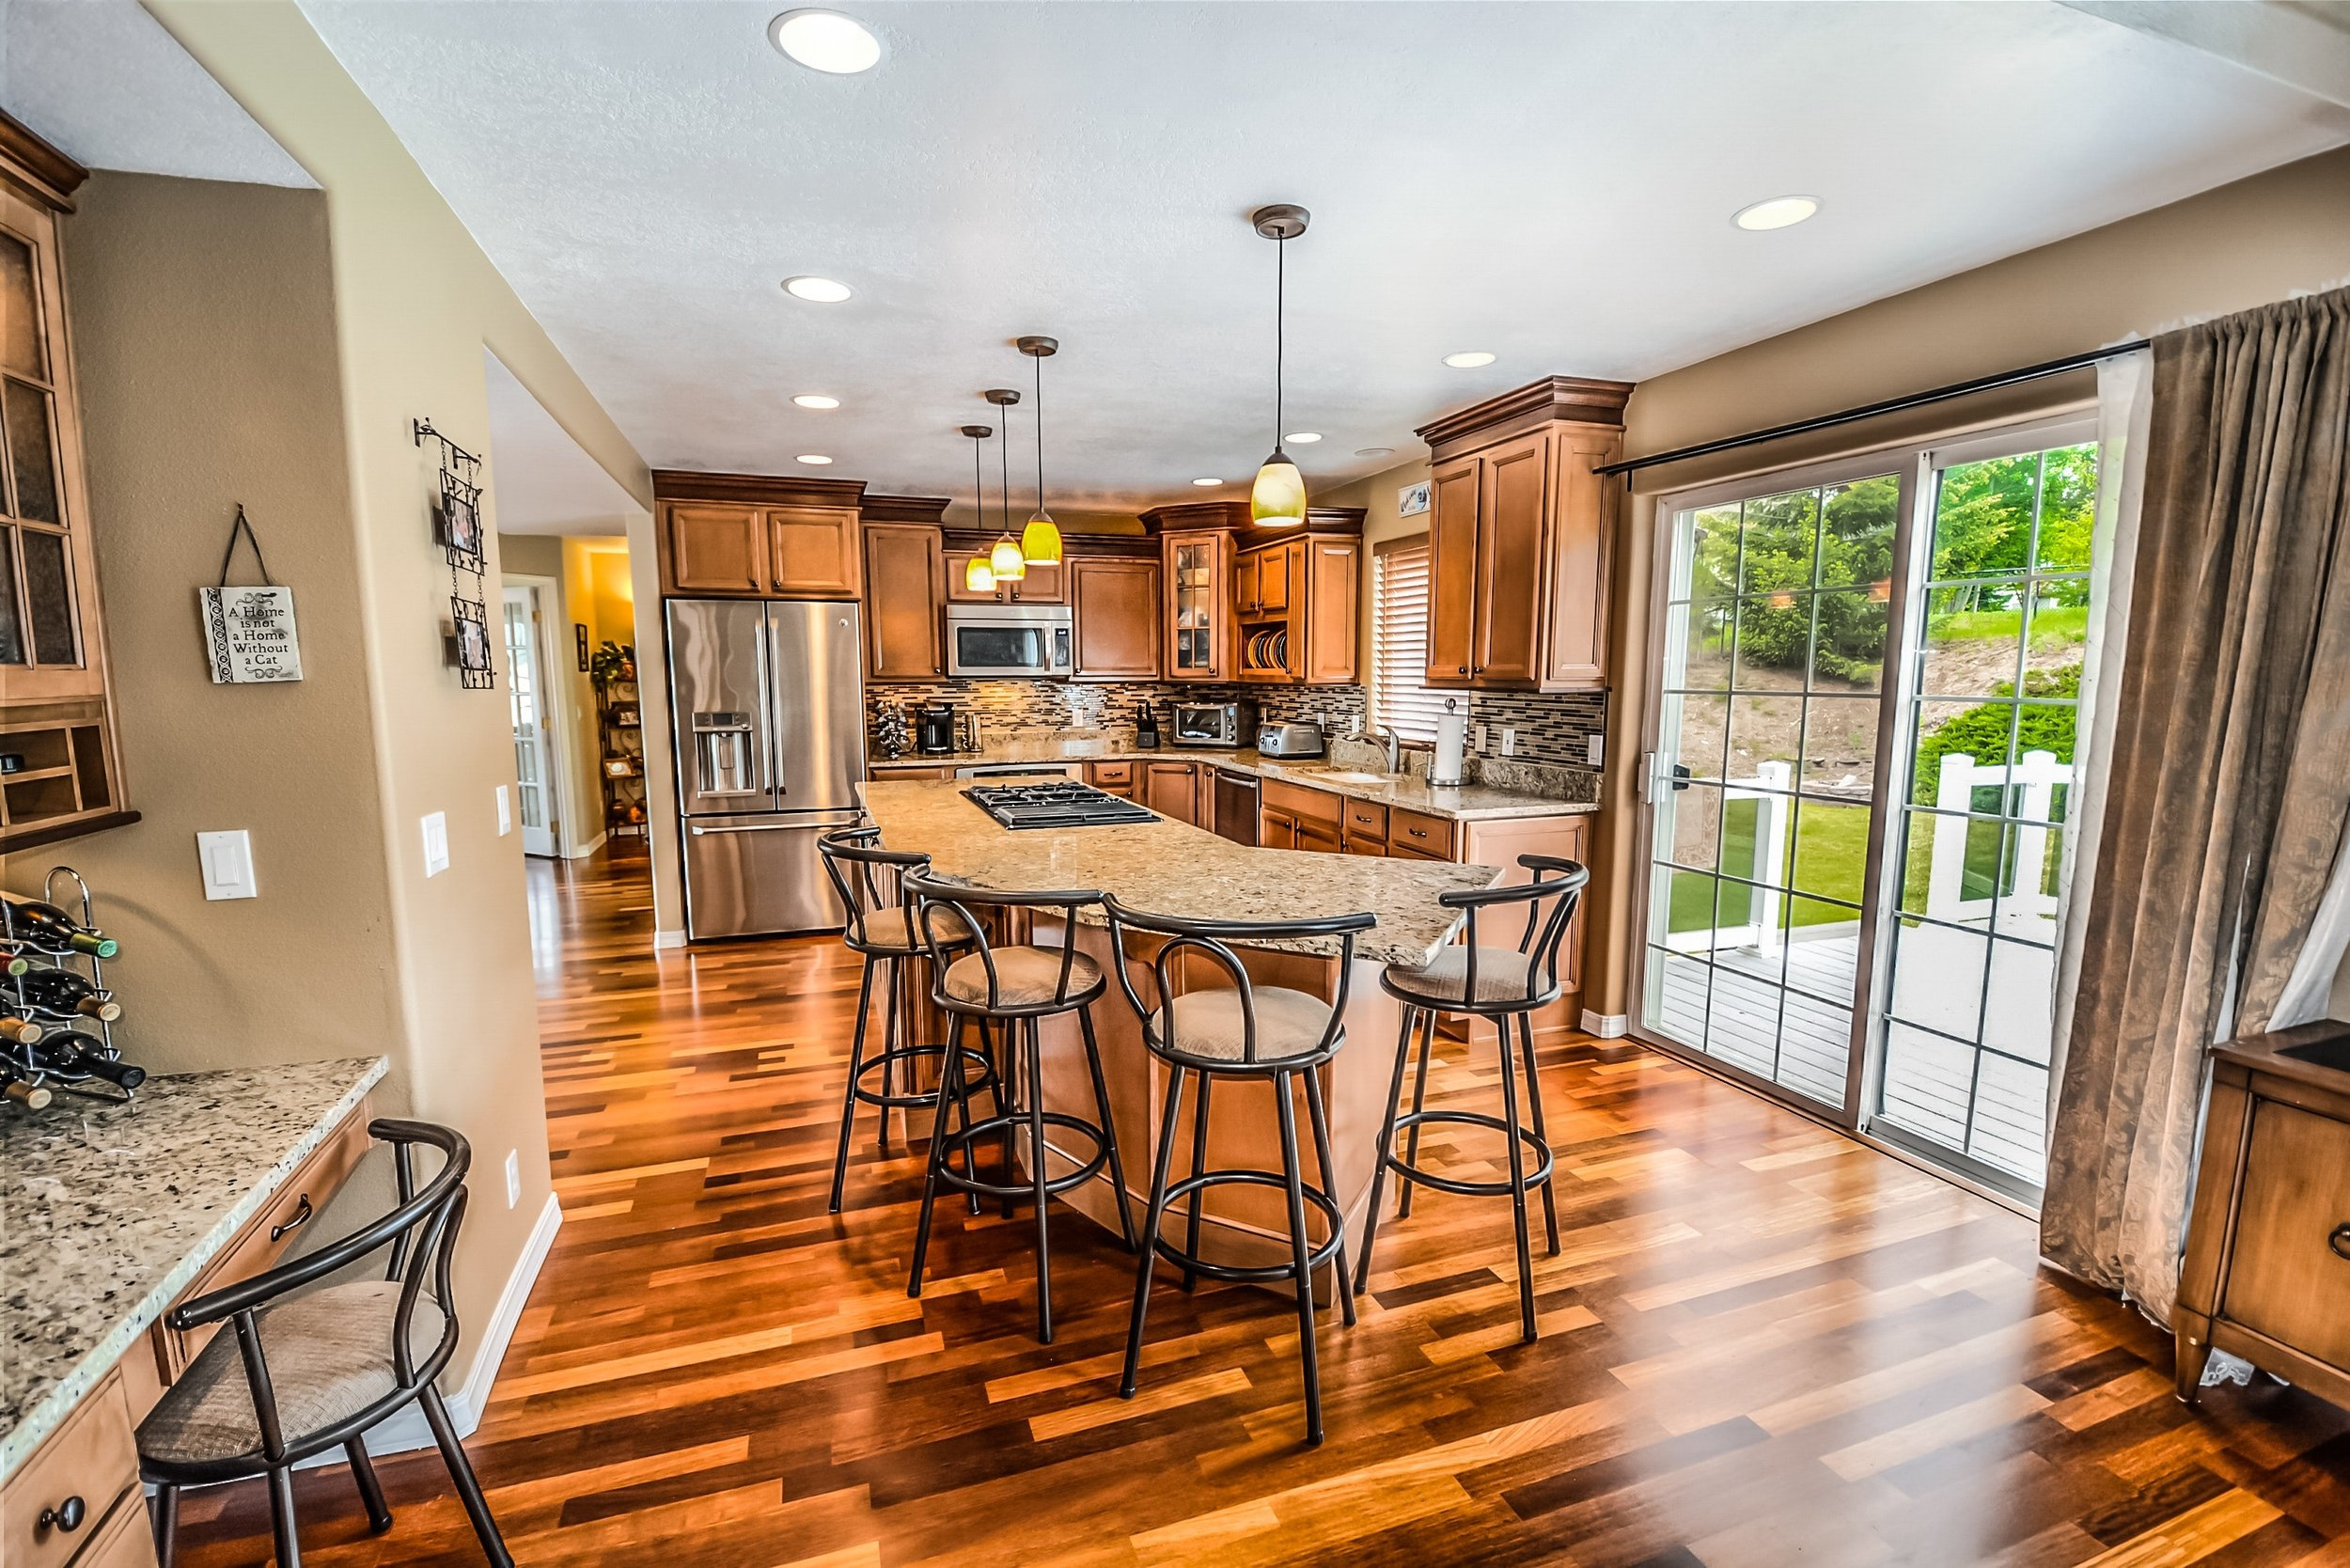 There is a school of thought when it comes to the feel of your home or business that the flooring is the most important aspect. Granted, we might be a little biased since flooring is the lifeblood of the professionals who work here at  Ozburn-Hessey , but do not let that blind you. Flooring is one of the first things many see, and there is no question that it is the one area of a home or business that people are always touching. When one area holds this level of importance, you owe it to yourself to find a floor that creates something unique and special, and most of all, something that is undeniably you. Now, there are thousands of options from which you can choose, so finding something is not the issue. Finding something that does not look like it is already in the home or office of thousands of other people across the country is the real deal.   Exotic, Smashing Hardwoods   Luckily, the professionals here at Ozburn-Hessey have great relationships with manufacturers, both here in  Nashville  and across the nation. It allows them to discover something truly unique, something you probably won't find elsewhere. We are talking about something like Brazilian cherry, with its deep red and wonderfully smooth look. It is a lot nicer than most of the average oak hardwoods you will find, and that's barely scratching the surface. Speaking of surfaces, Brazilian cherry is one of the hardest and longest lasting materials you will find, so once the  hardwood flooring installation  is complete (something we here at Ozburn-Hessey can help with), you won't have to worry about replacing it for a long time. If that doesn't sound like your speed, then maybe something like tigerwood might suit you. As the name implies, tigerwood is a deep rich swirl of colors and grains. It roars its exotic nature.   Residential and Commercial Carpeting, a Cut Above   If you like the idea of something unique and beyond the norm, something a little exotic and sexy, but more cushiony than an unforgiving 